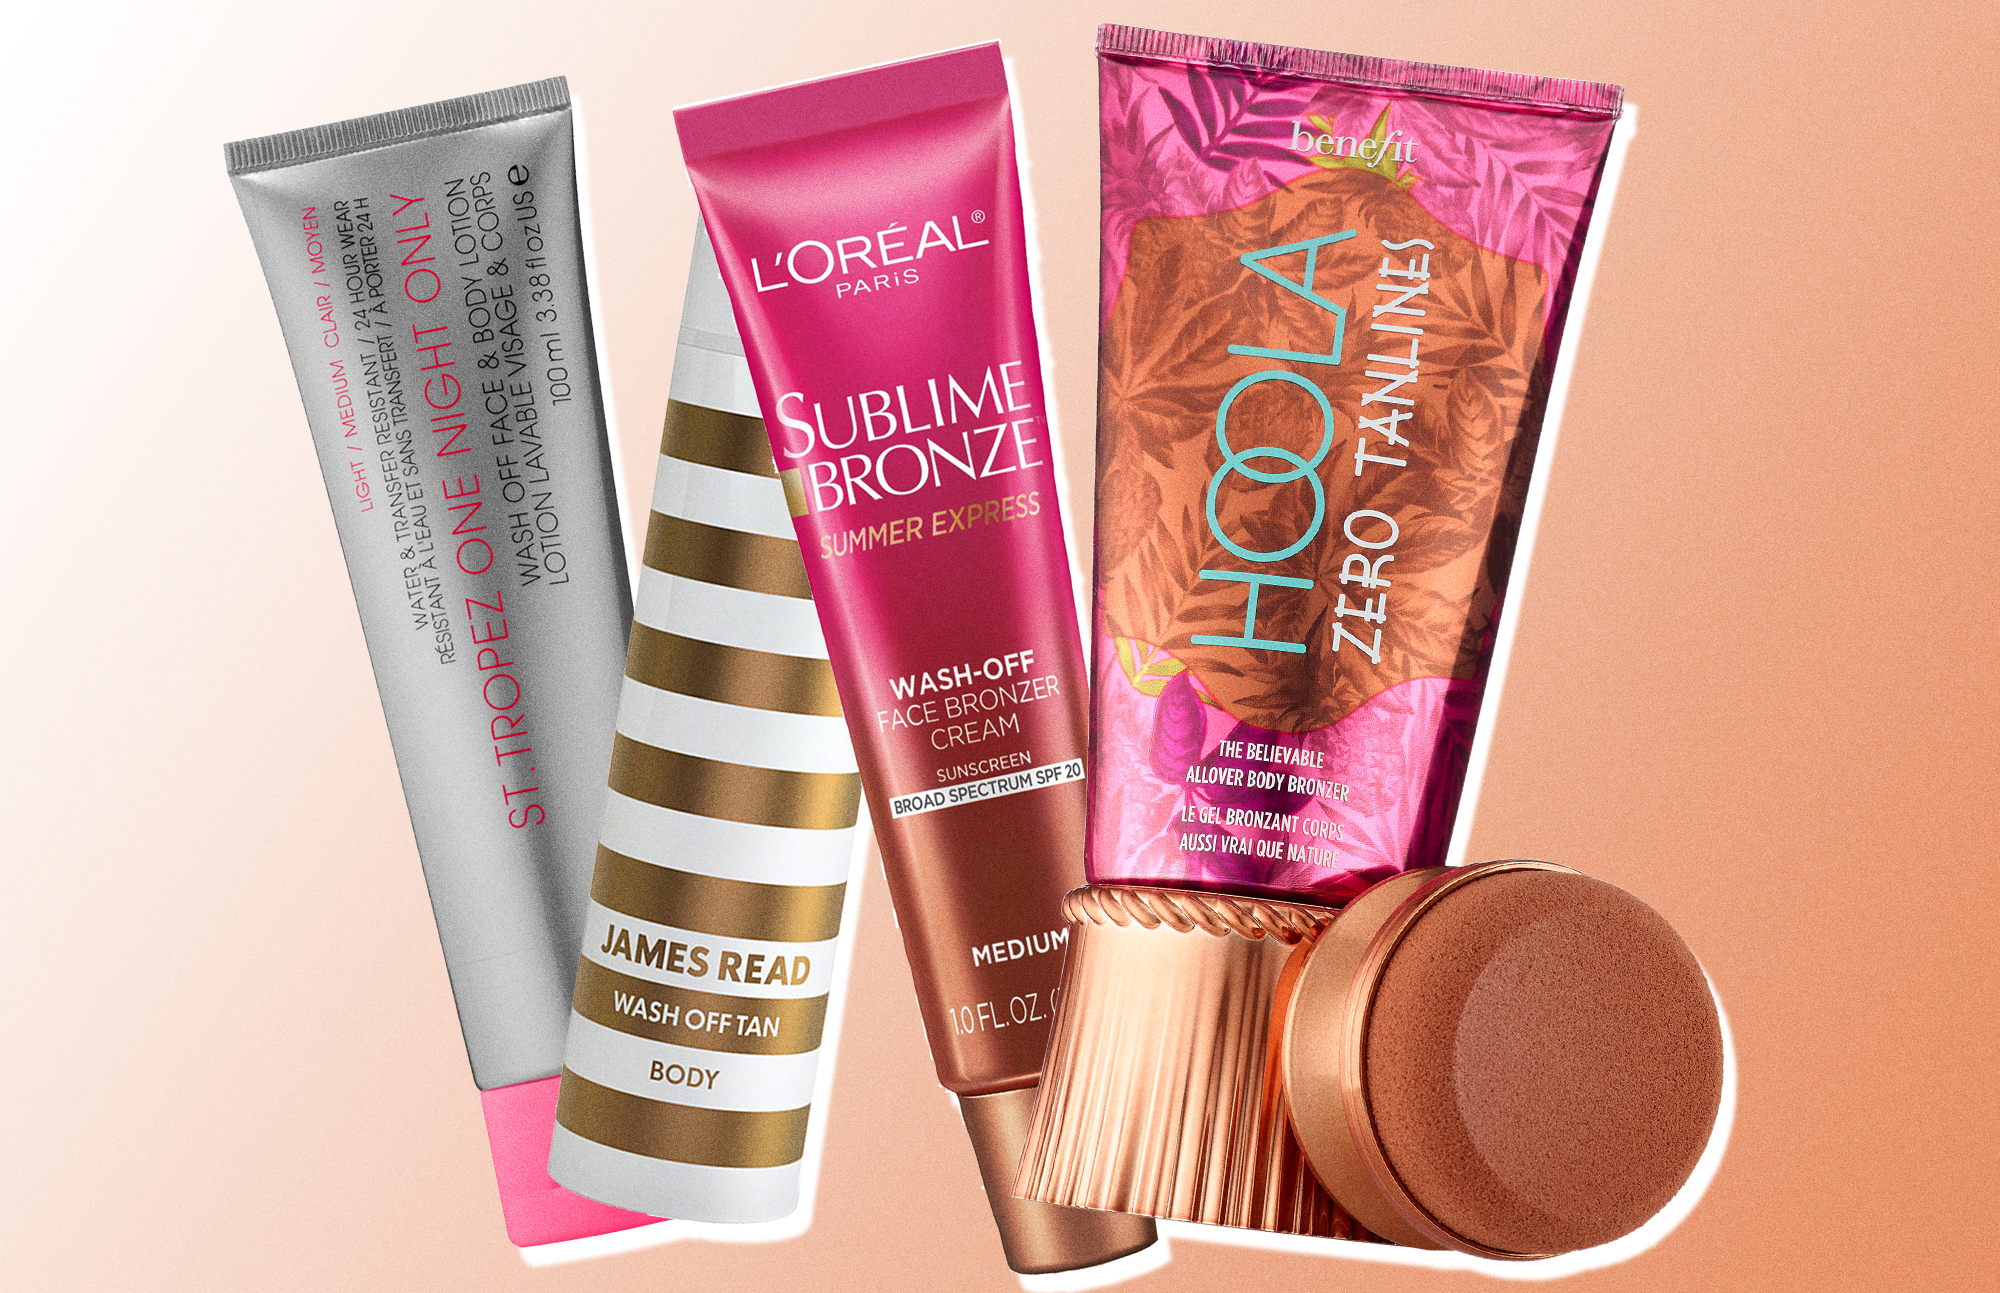 Wash-Off Self-Tanners for AllYour Temporary Tan Goals